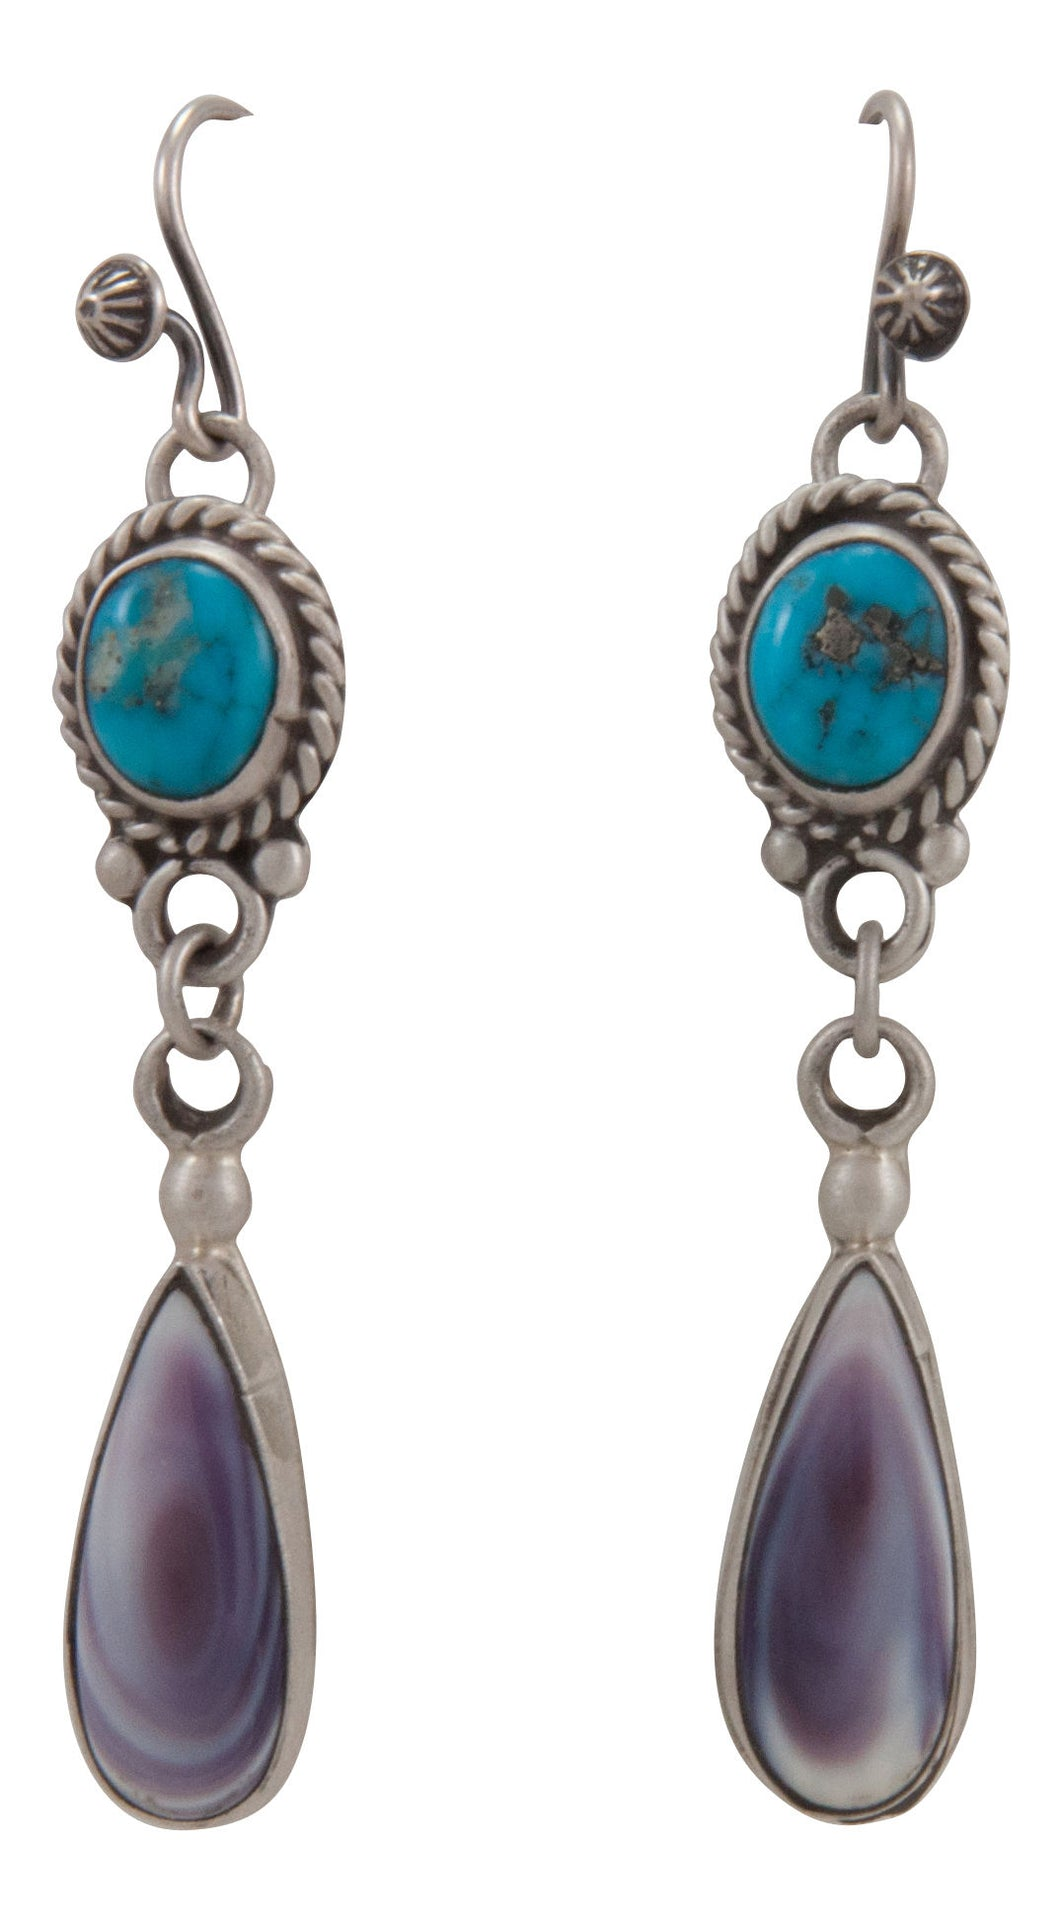 Navajo Native American Sleeping Beauty Turquoise and Shell Earrings by Willeto SKU231678